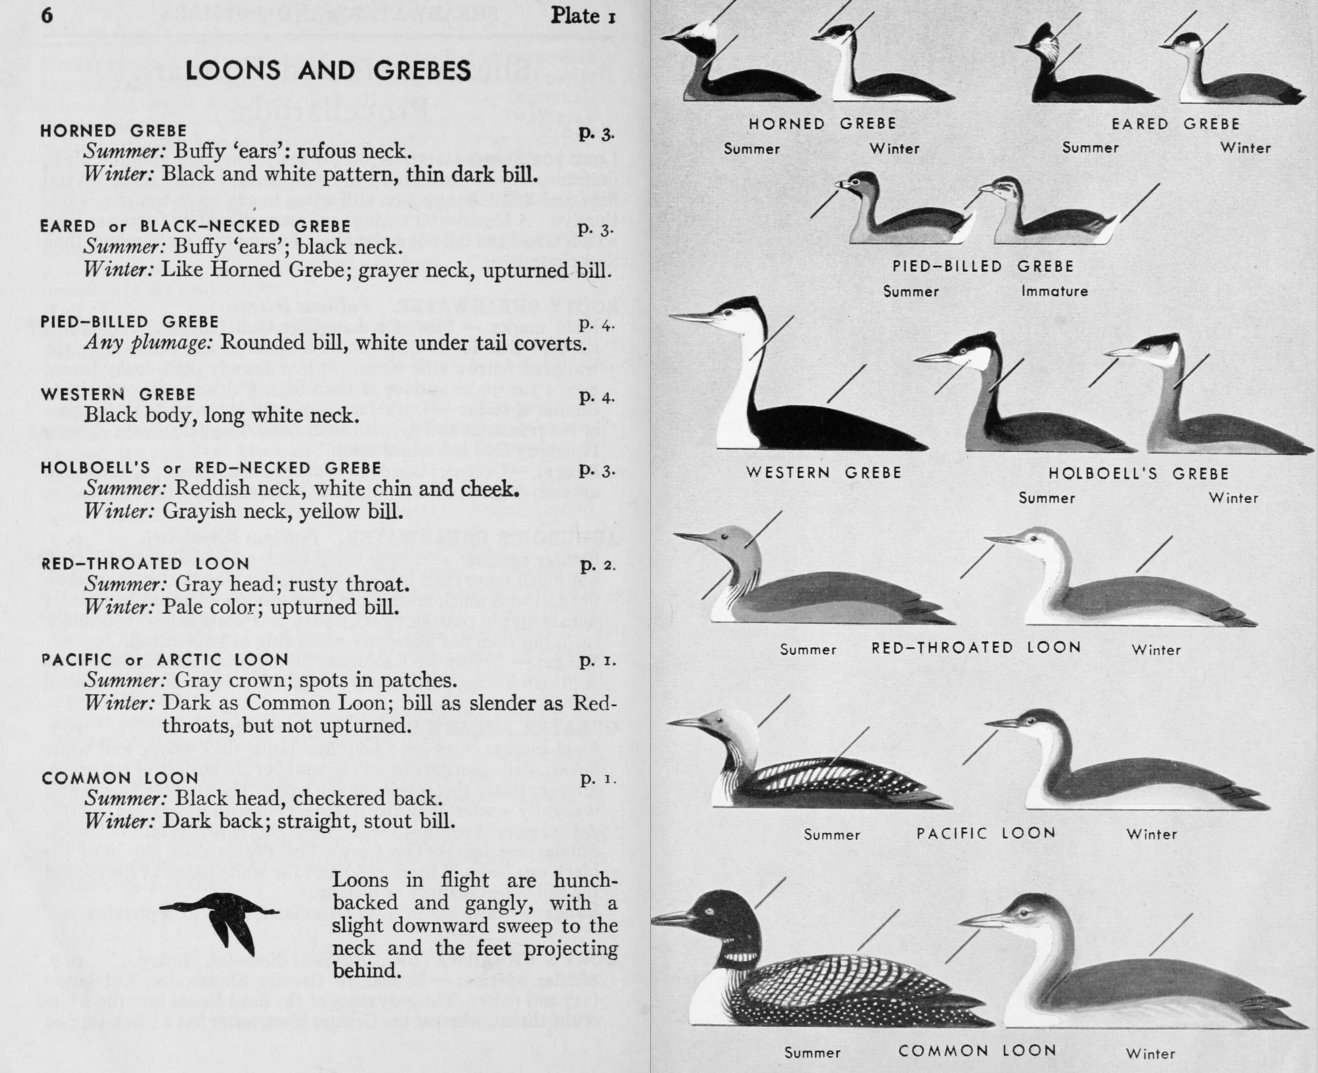 The Peterson Identification System From Roger A Field Guide To Birds 1934